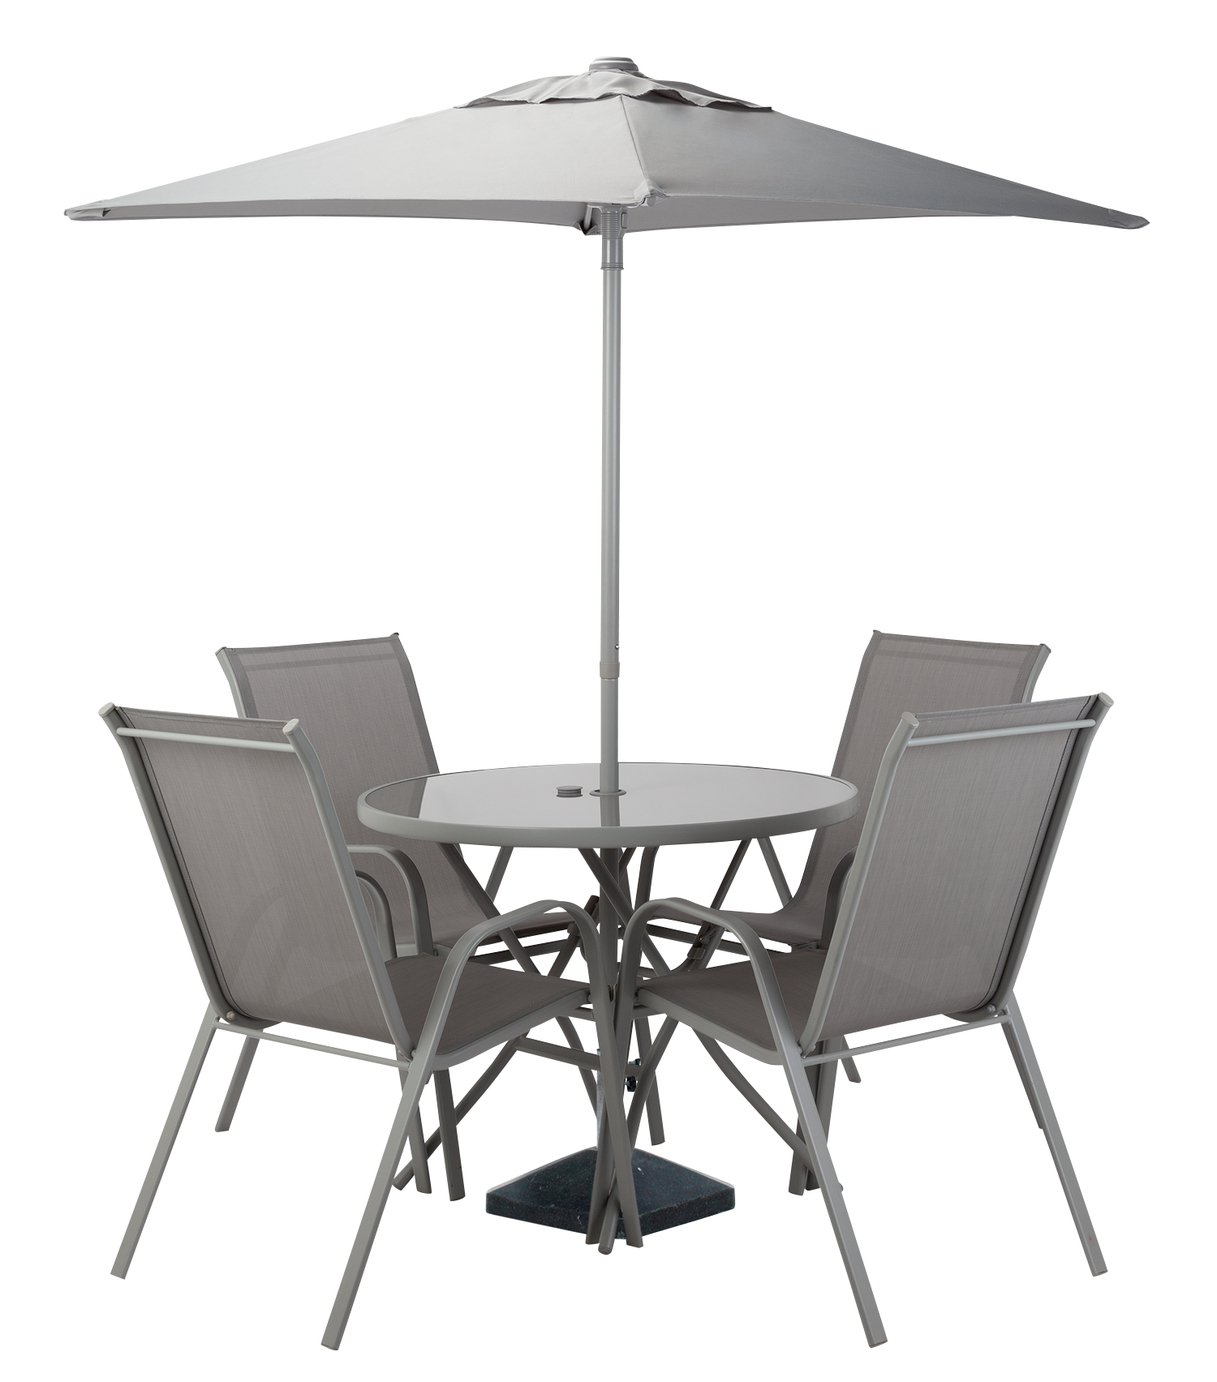 Argos Sicily Garden Table And Chairs: Sicily 6 Seater Patio Set Bronze